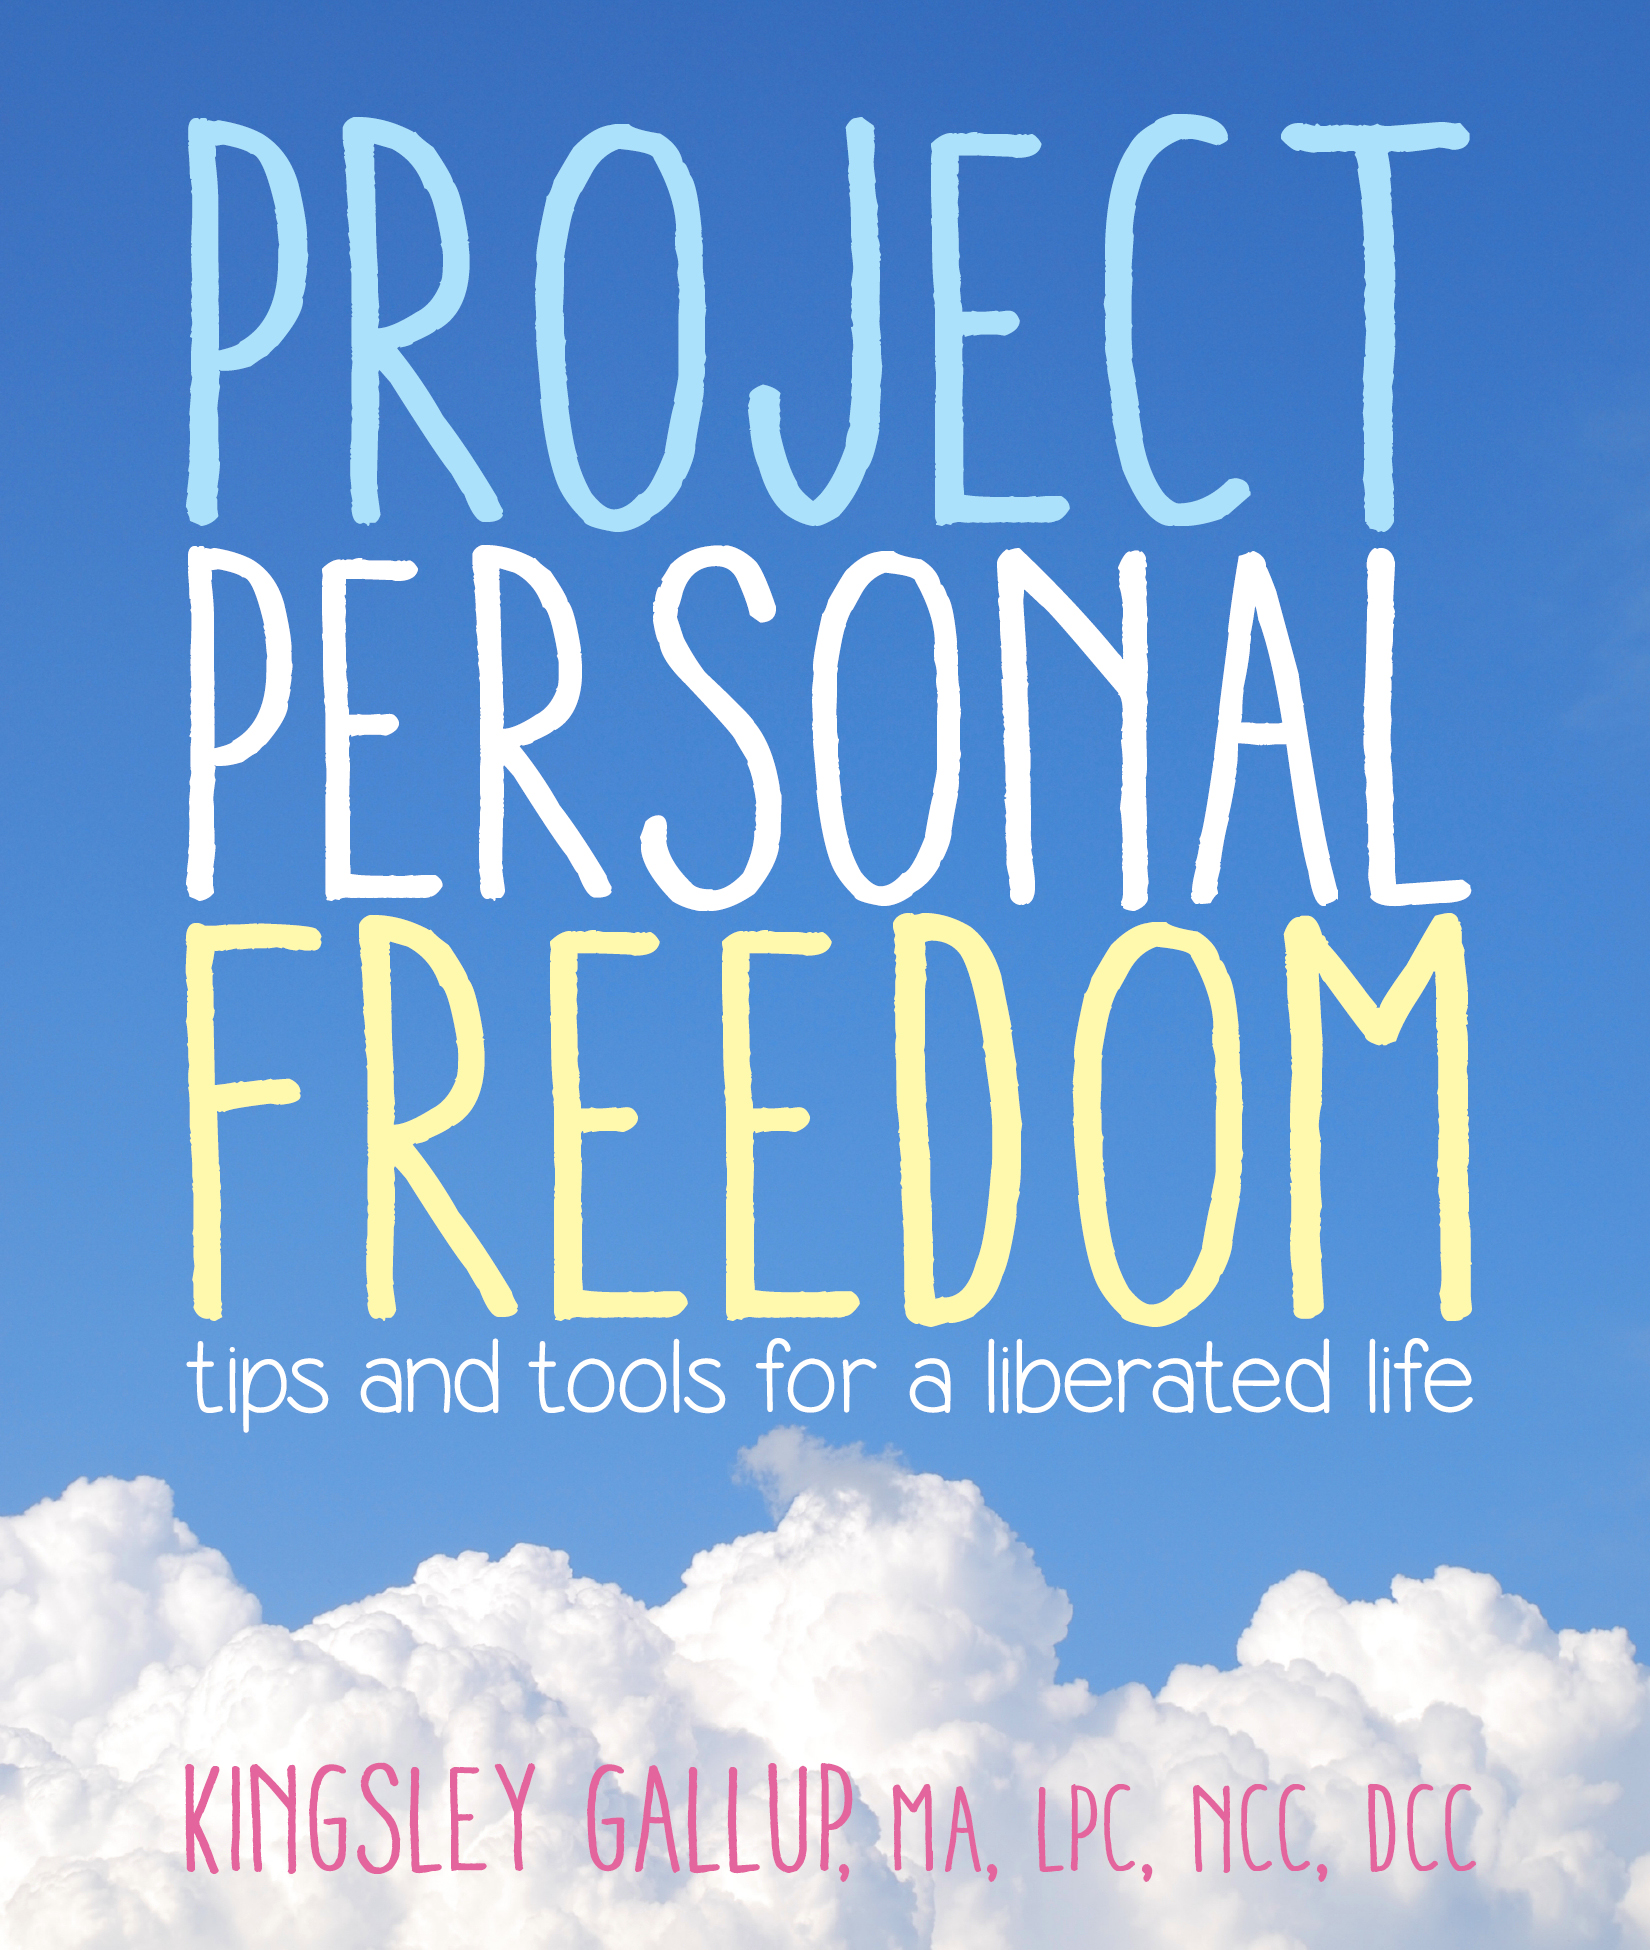 Project Personal Freedom